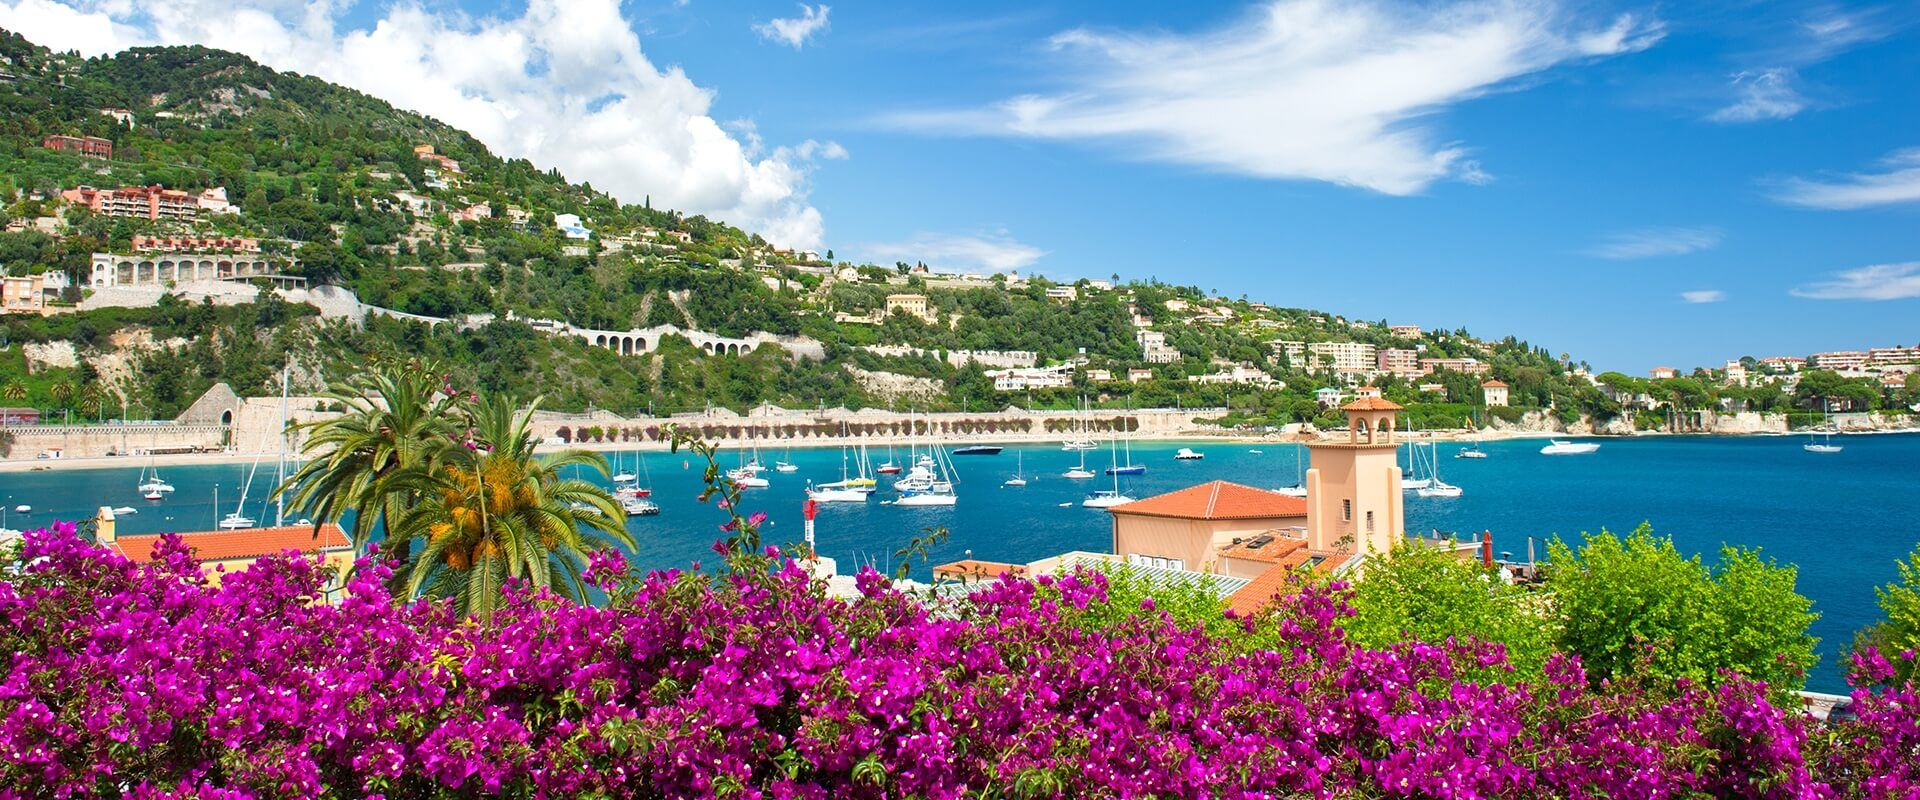 Coastal Tour , departure from Nice - from the Cape of Nice to Villefranche Bay- Trans Côte d'Azur - Maritime Company